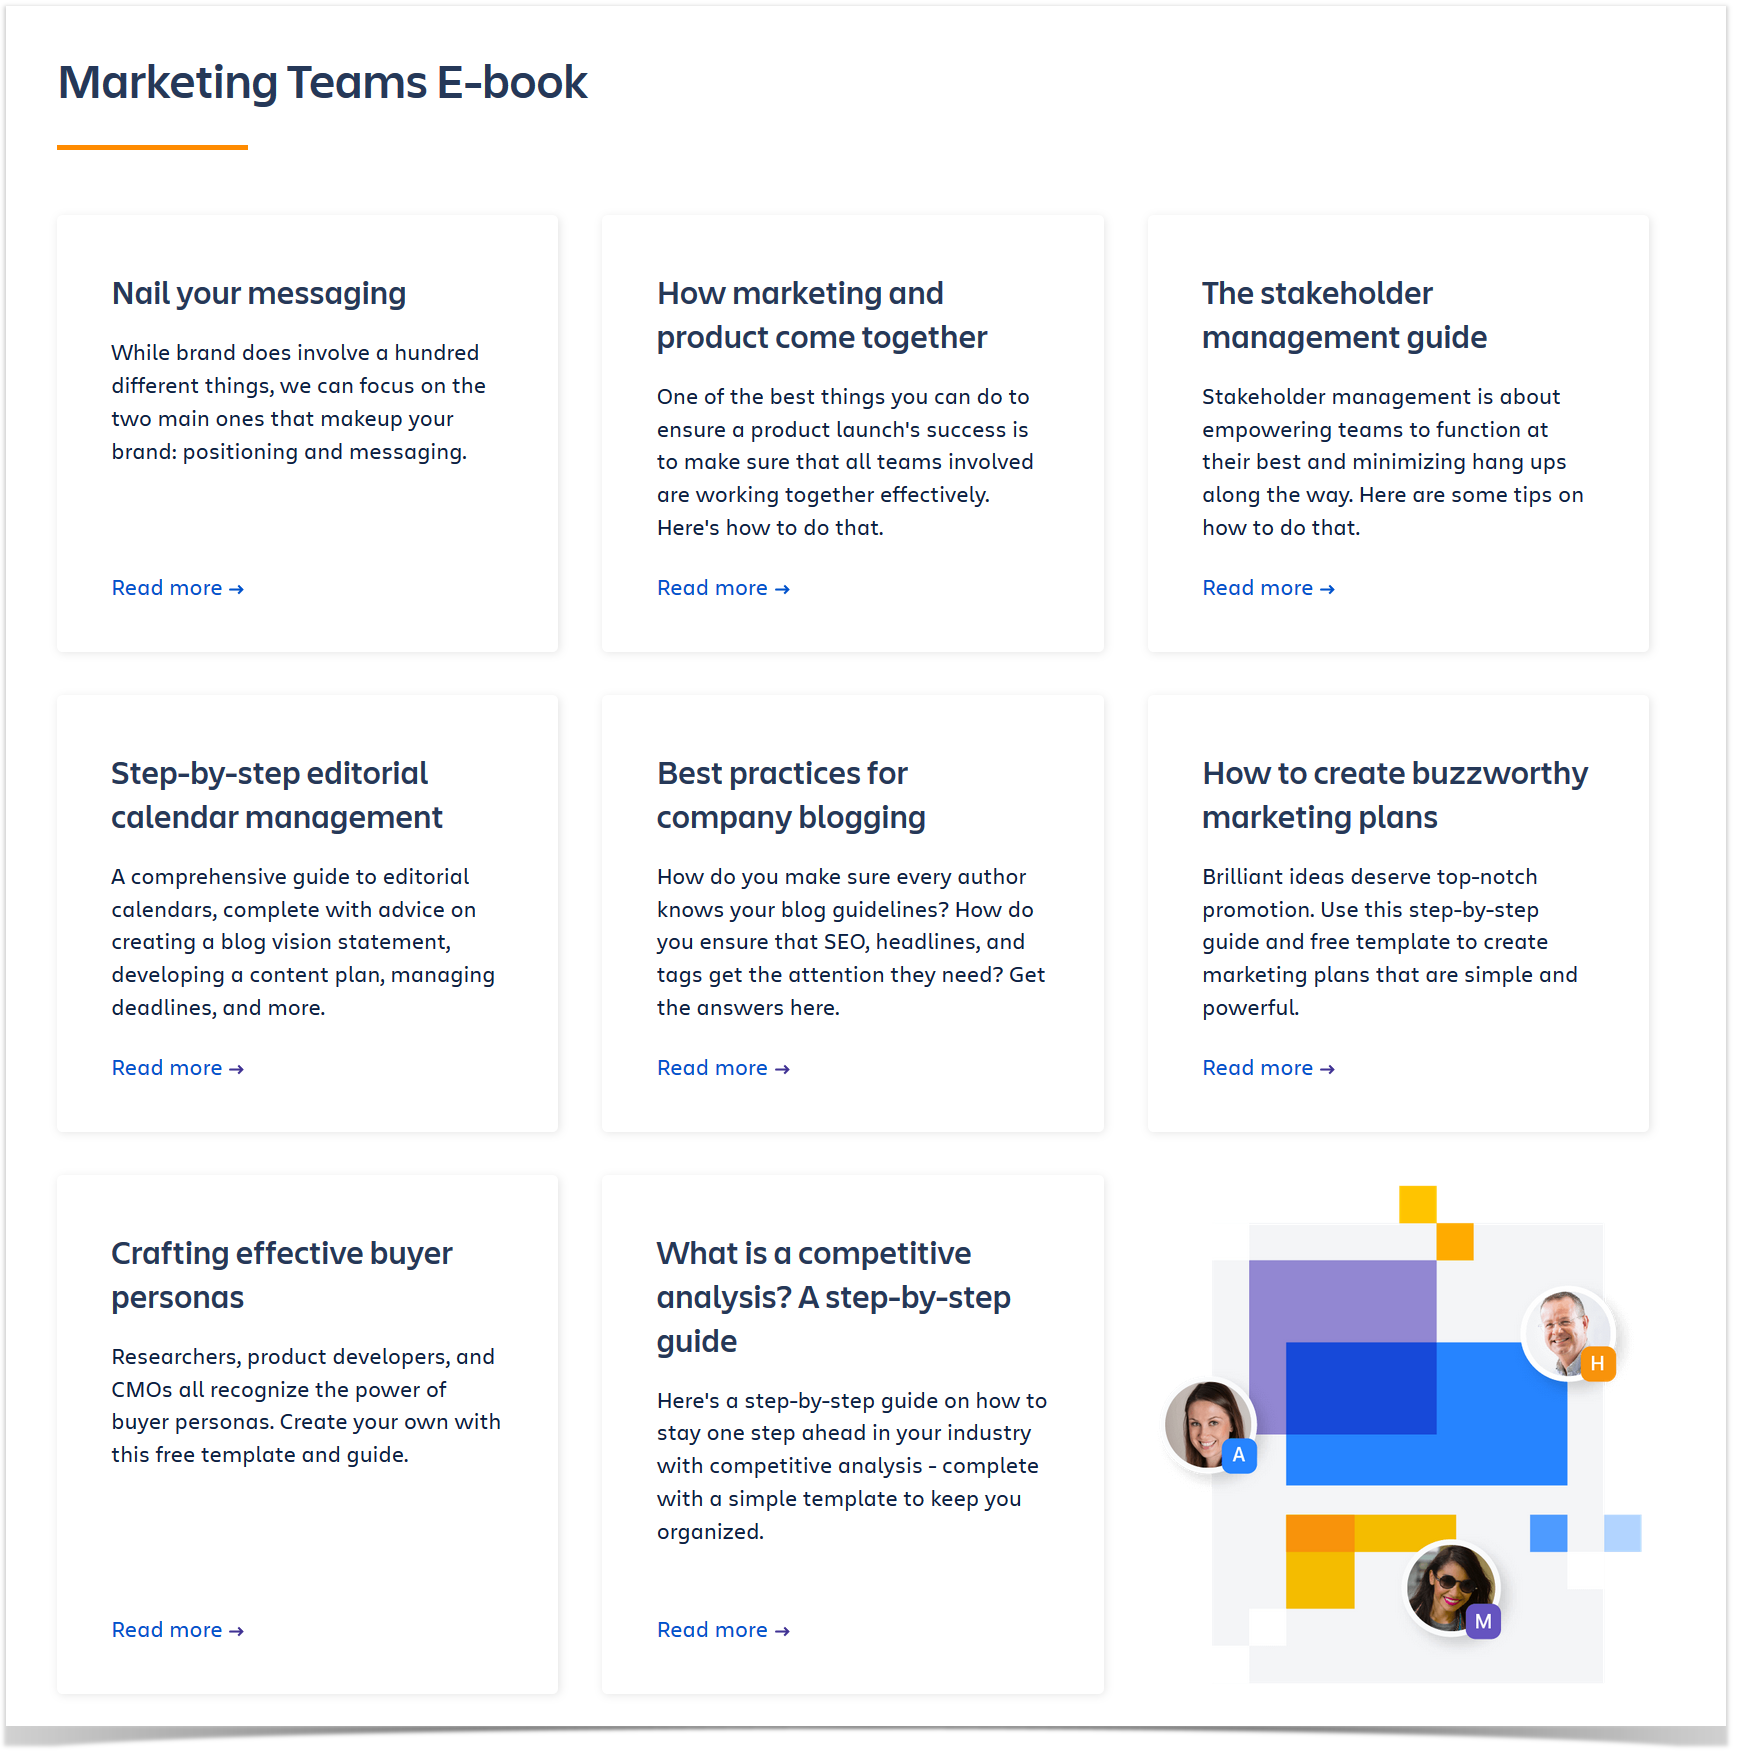 templates in Confluence for marketing teams